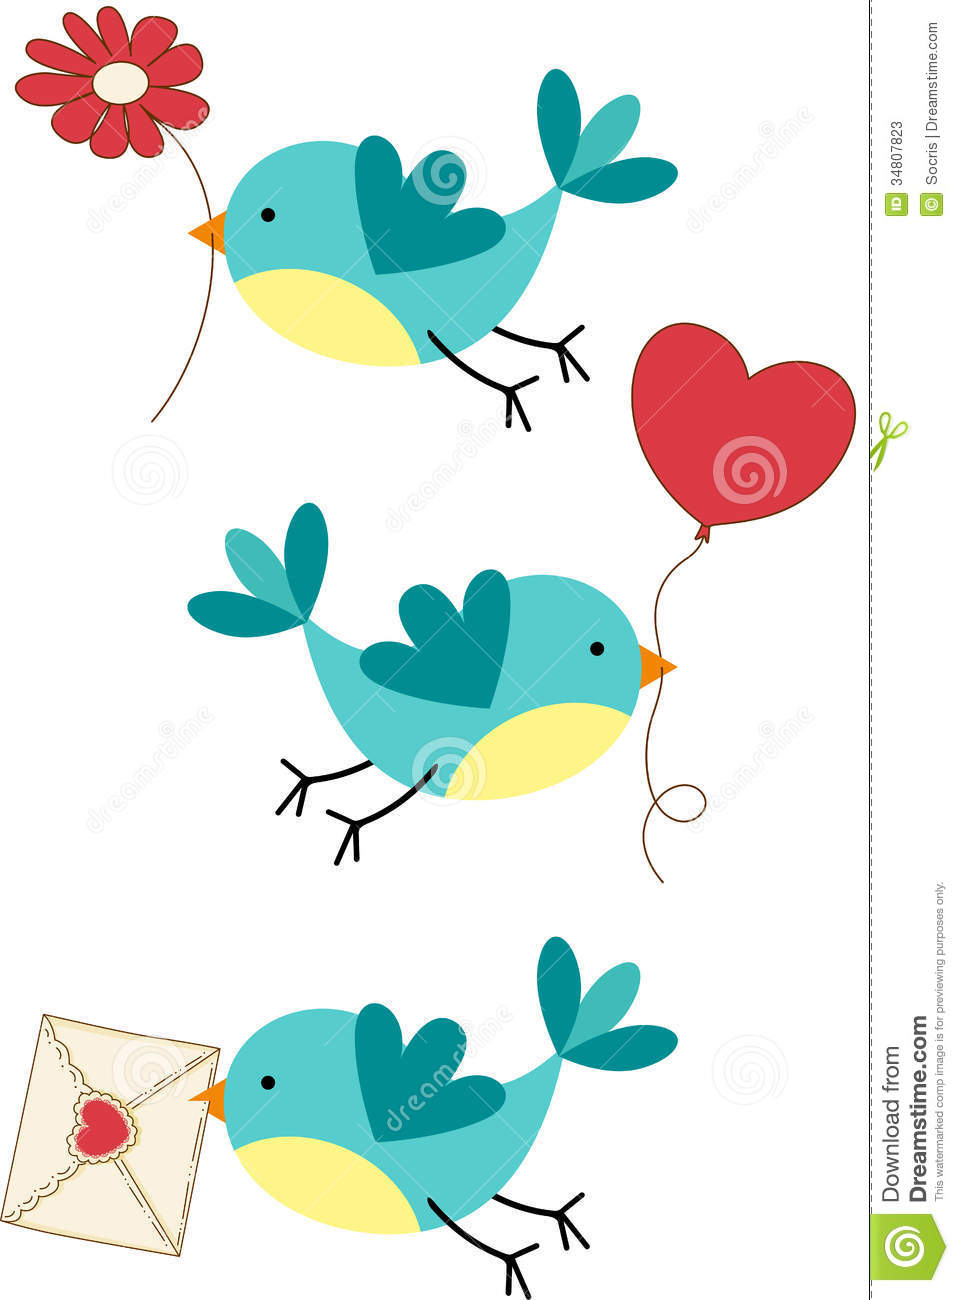 teal love birds clipart - Cute Bird Clipart